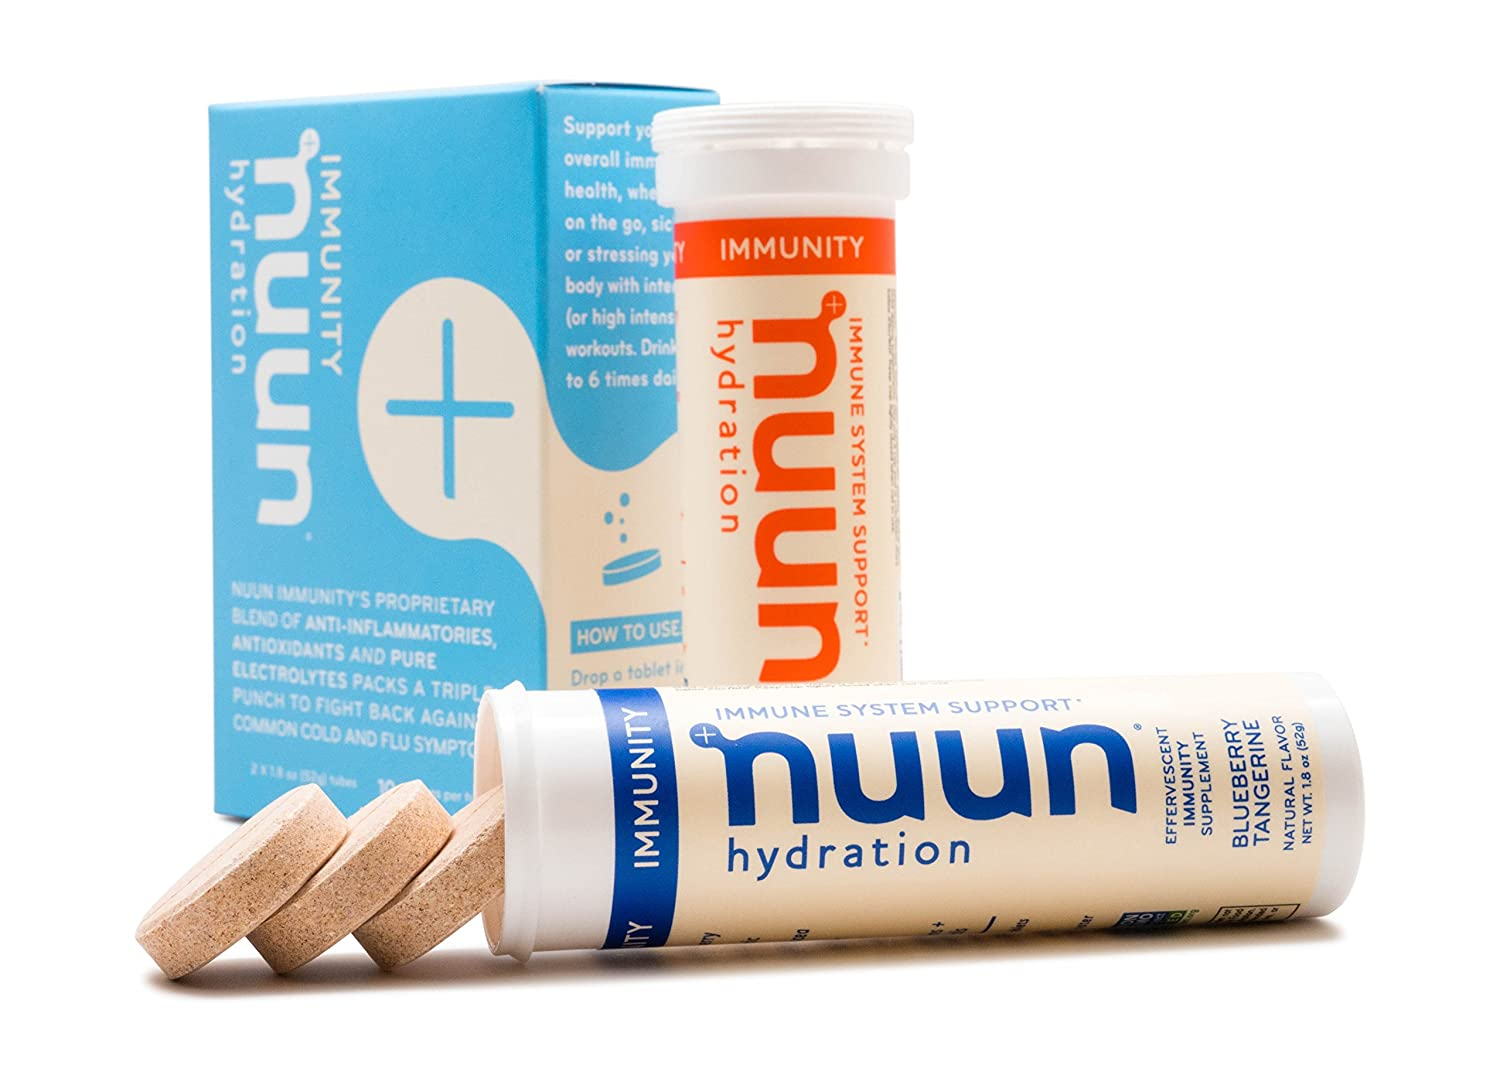 Nuun Immunity: Electrolytes + Antioxidants + Anti Inflammatories, Immune Health Drink Tablet, Blueberry Tangerine/Orange Citrus Mixed 2 Pack (20 Servings),... by Nuun